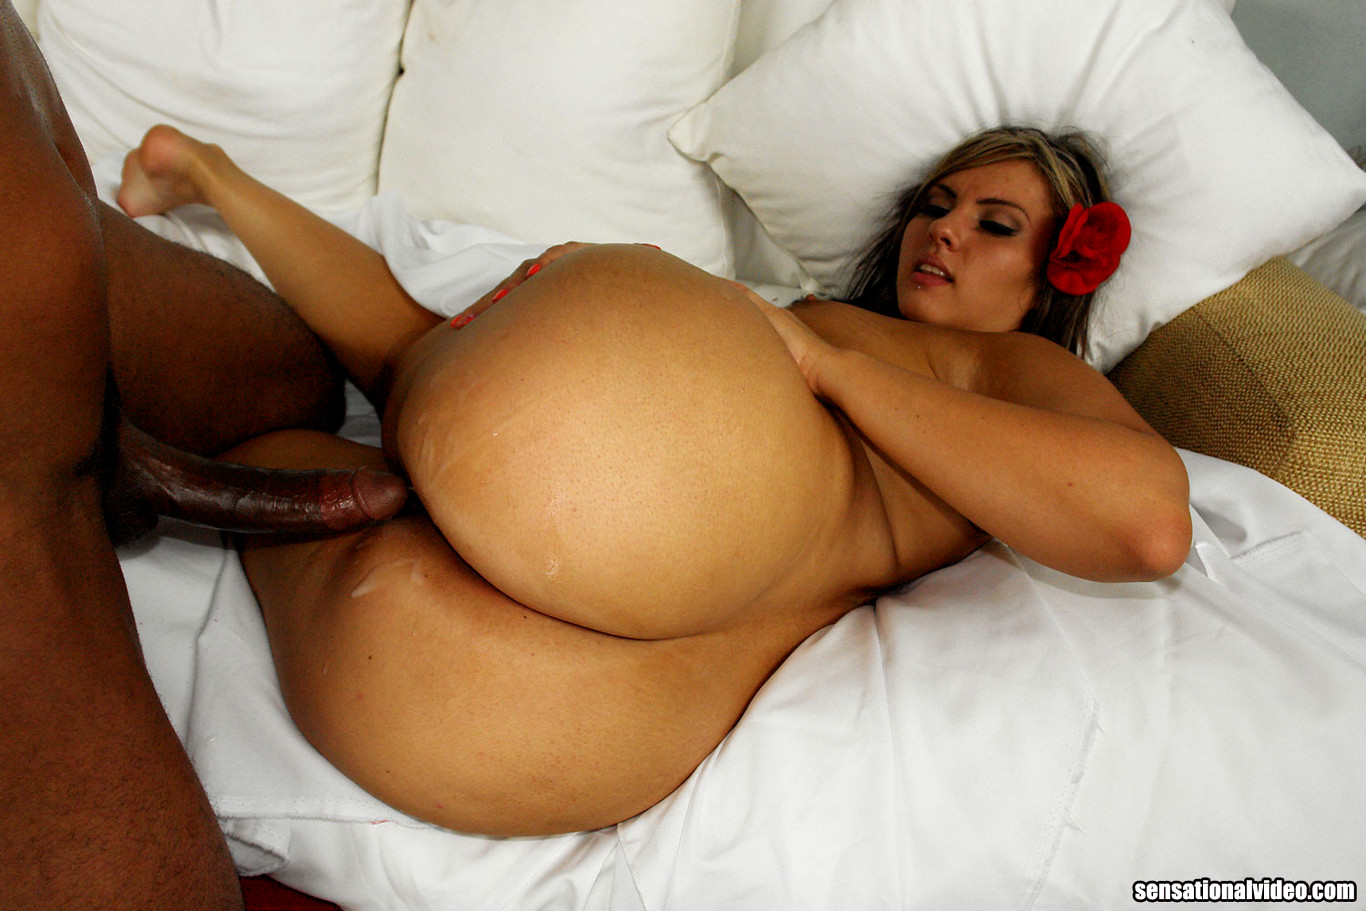 free-black-porn-big-booty-movie-deme-lavato-naked-having-sex-with-a-girled-now